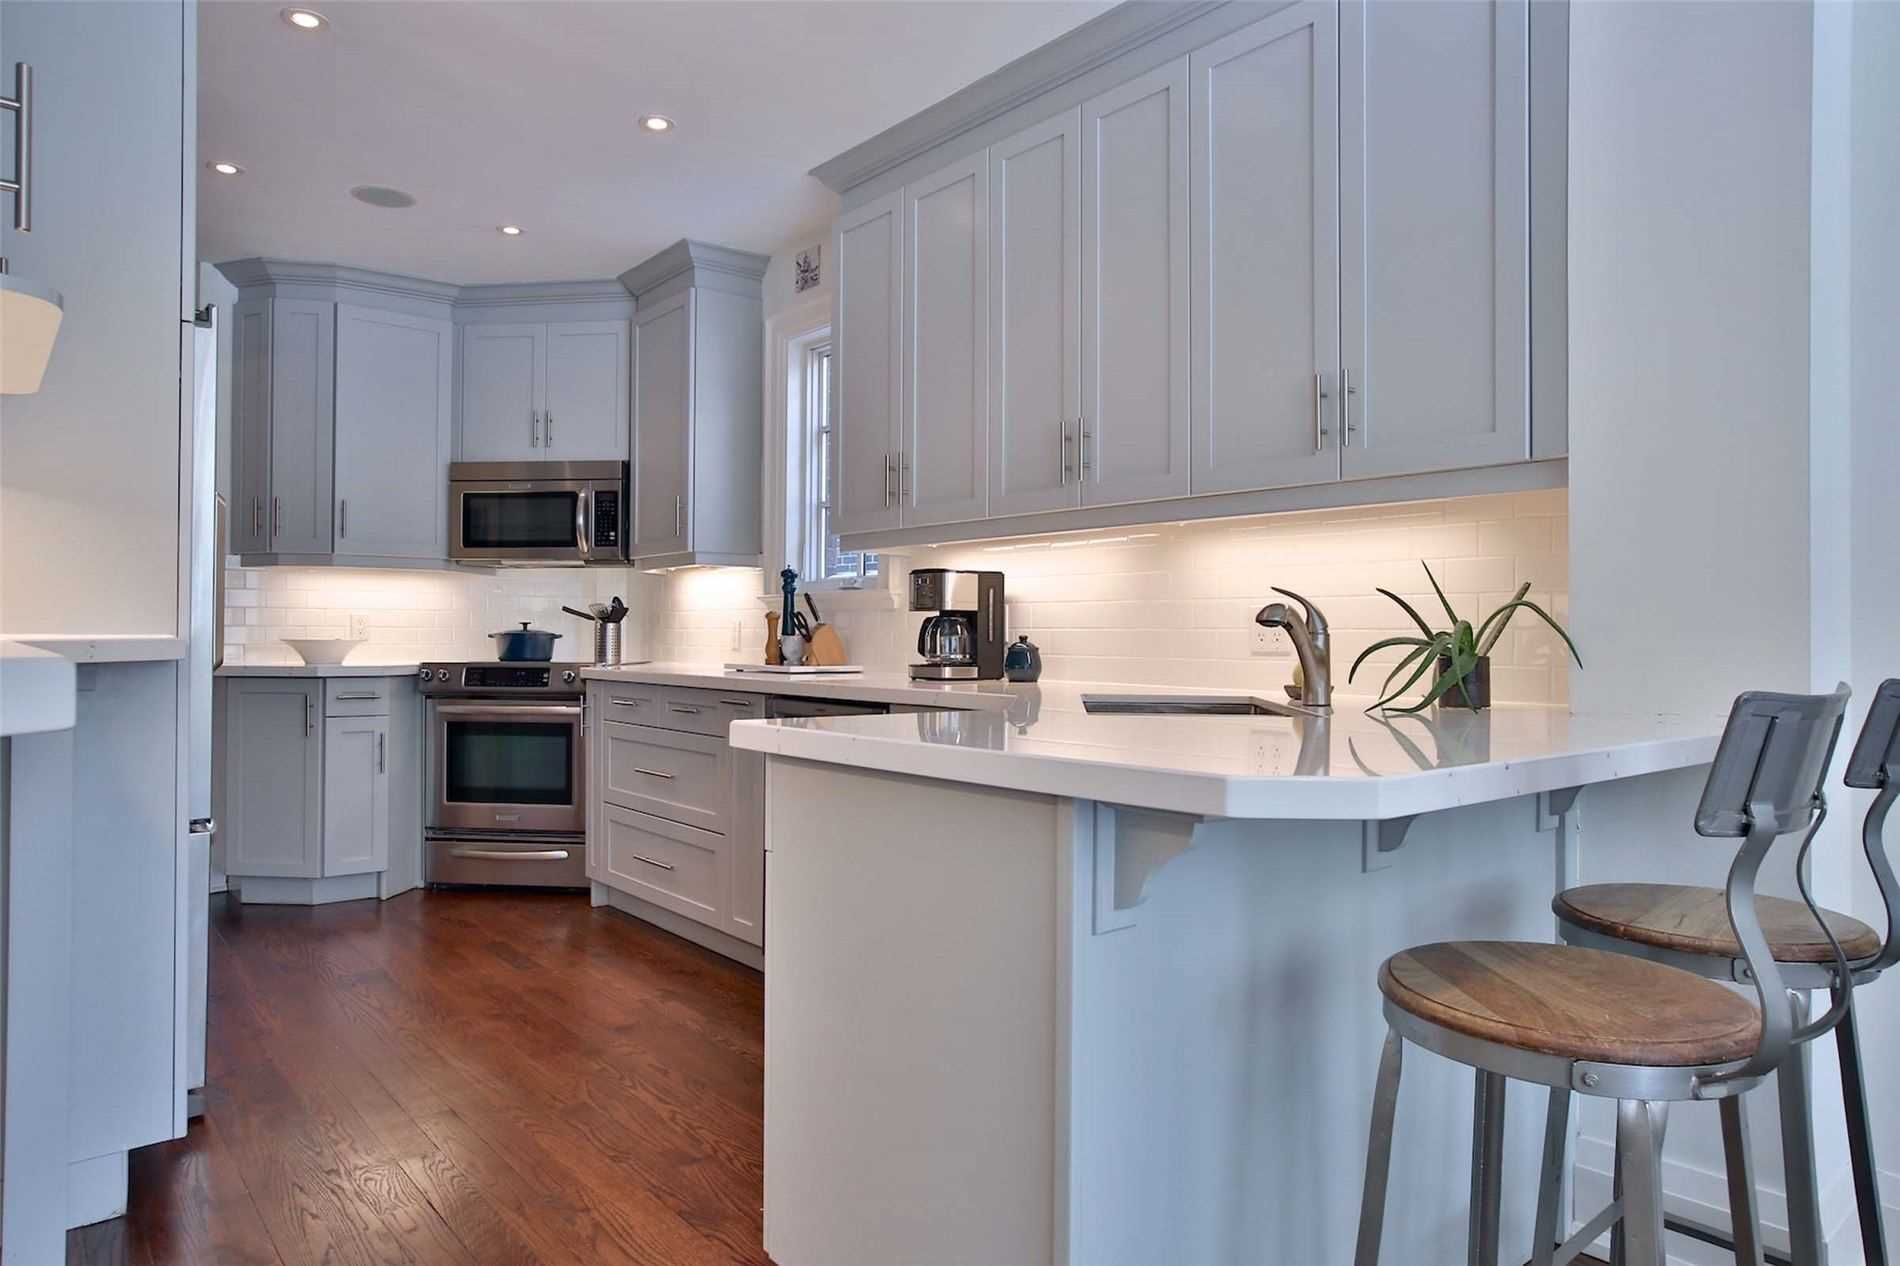 Photo 8: Photos: 181 W Glengrove Avenue in Toronto: Lawrence Park South House (2-Storey) for sale (Toronto C04)  : MLS®# C4633543